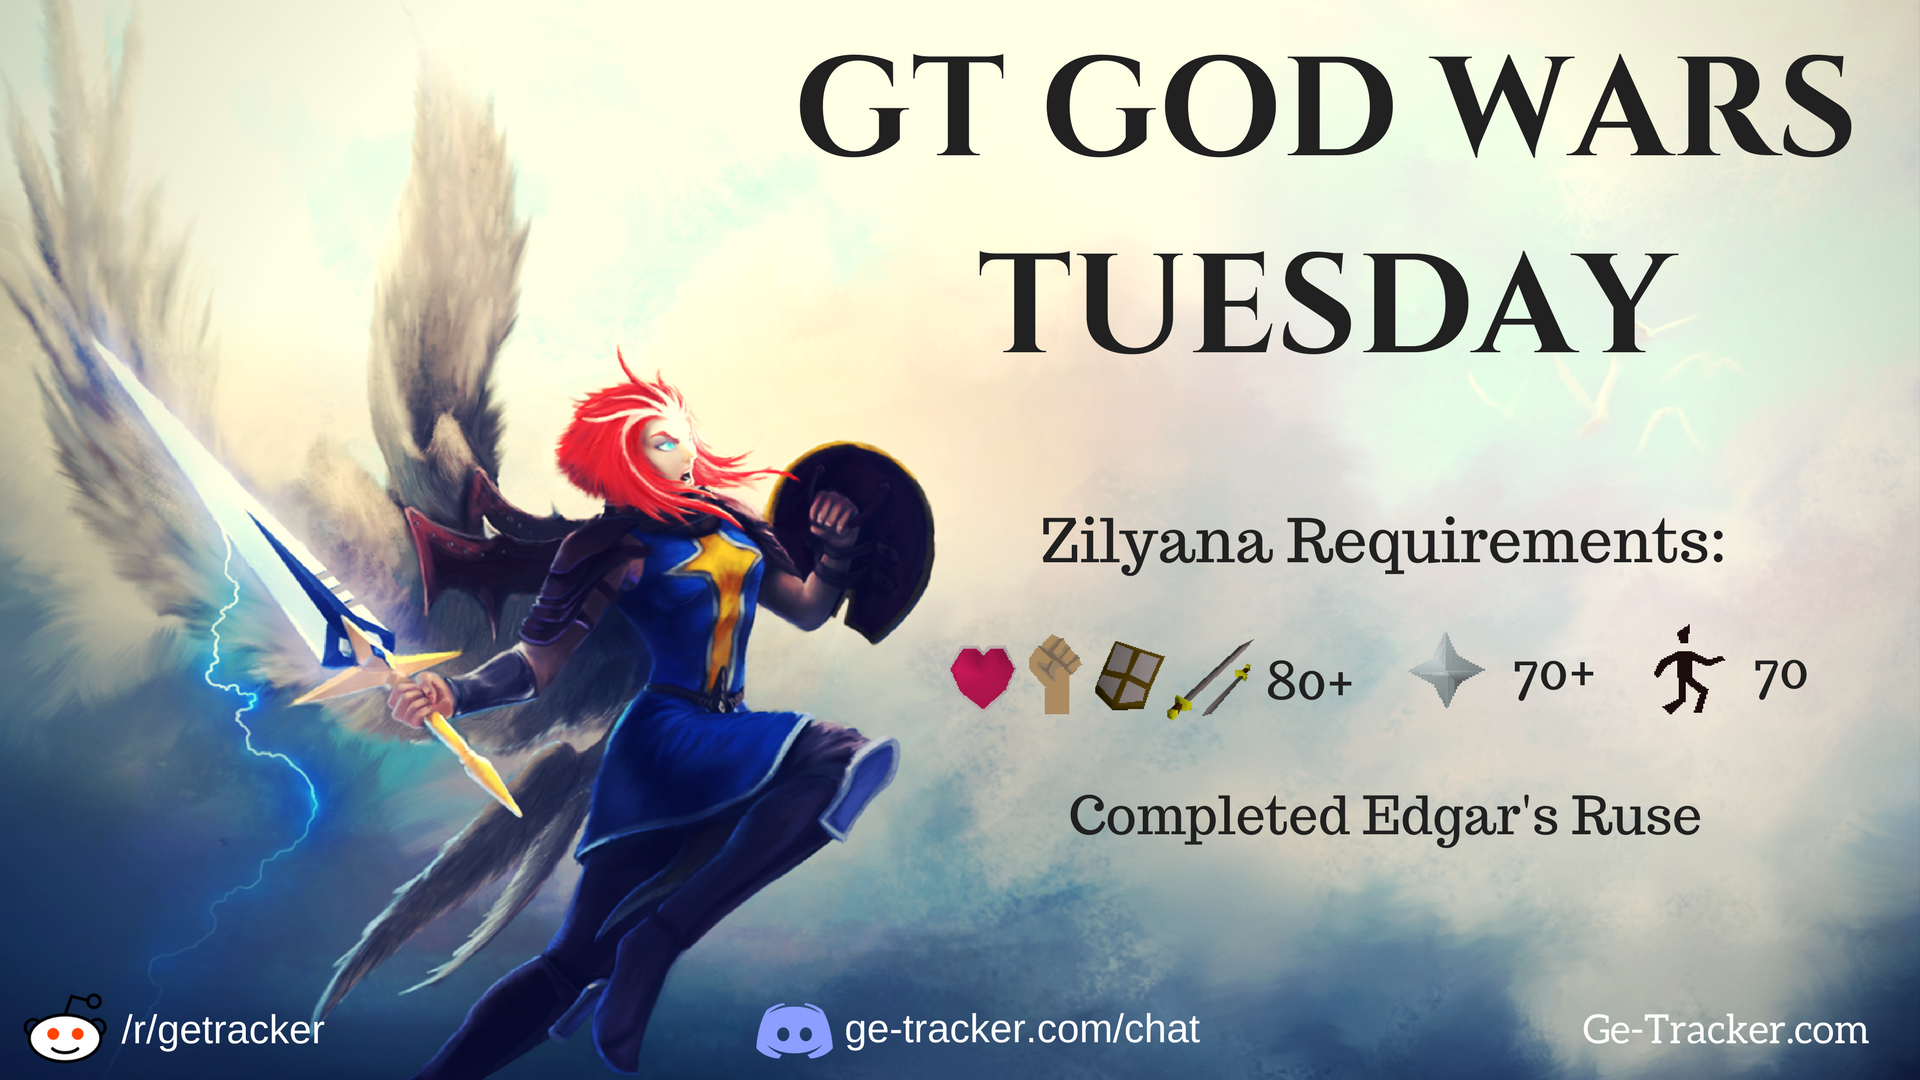 GT GOD WARS TUESDAY